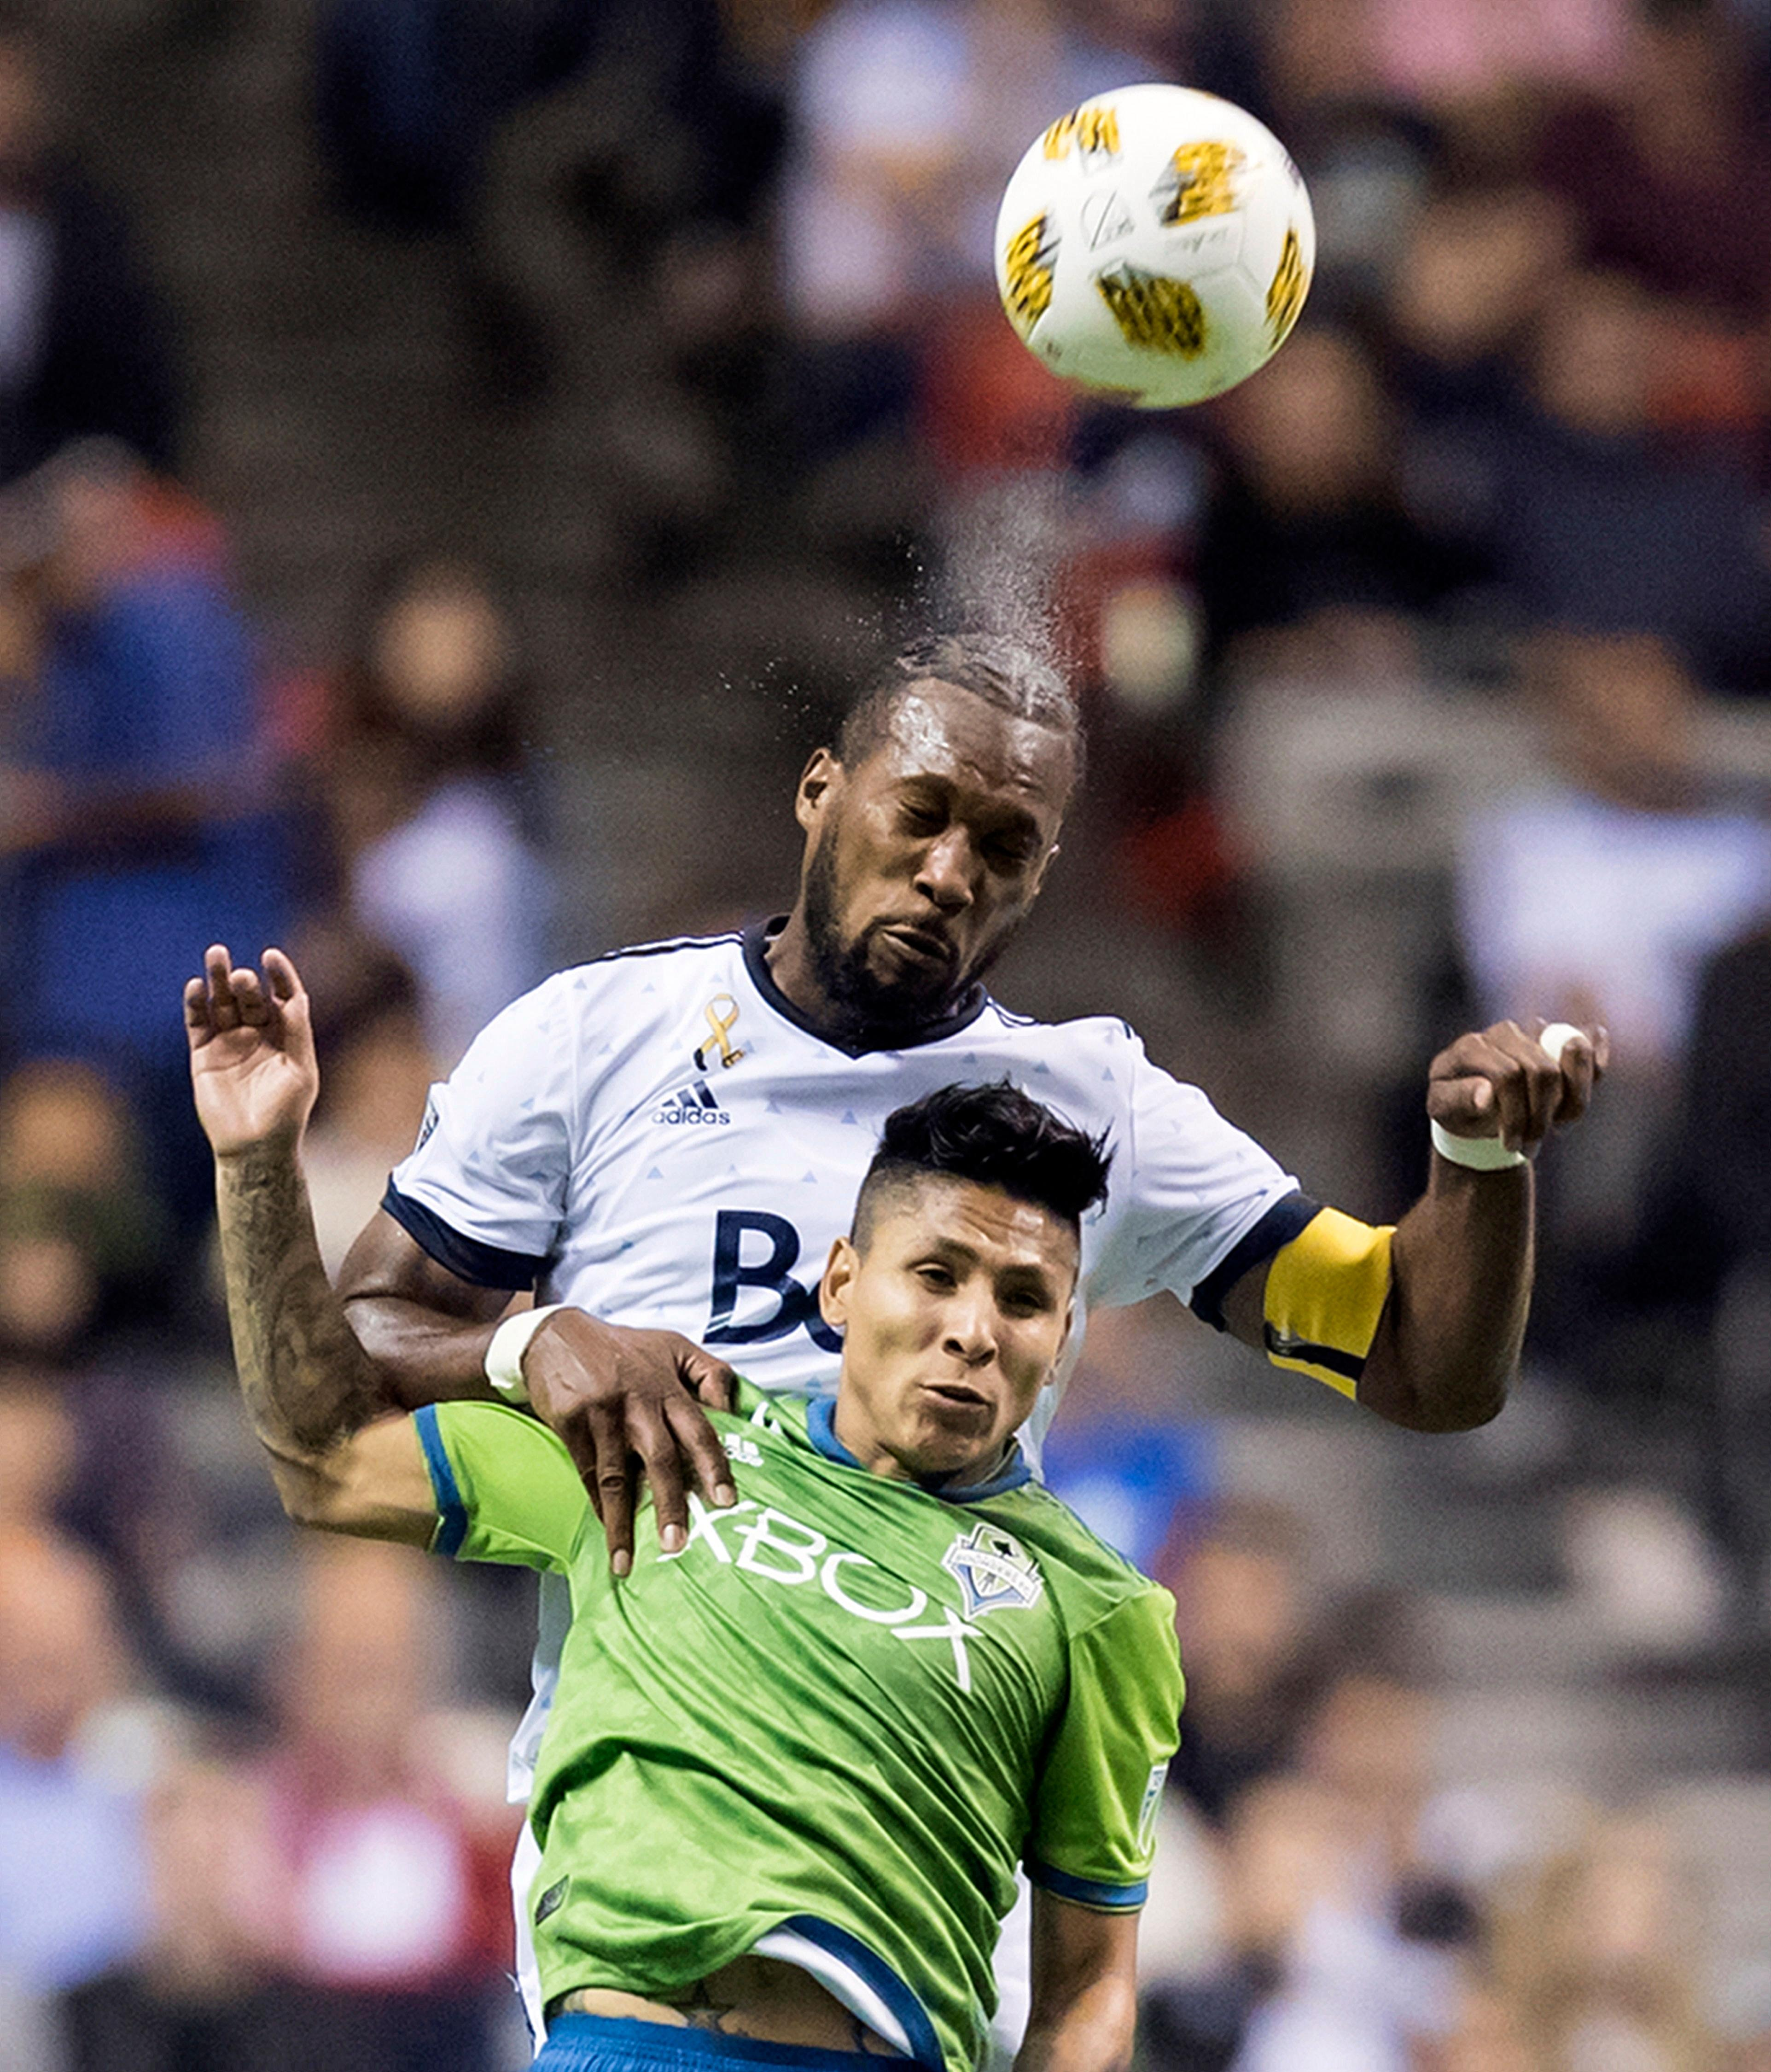 Vancouver Whitecaps' Kendall Waston, back, heads the ball behind Seattle Sounders' Raul Ruidiaz during the first half of an MLS soccer match, Saturday, Sept. 15, 2018, in Vancouver, British Columbia. (Darryl Dyck/The Canadian Press via AP)